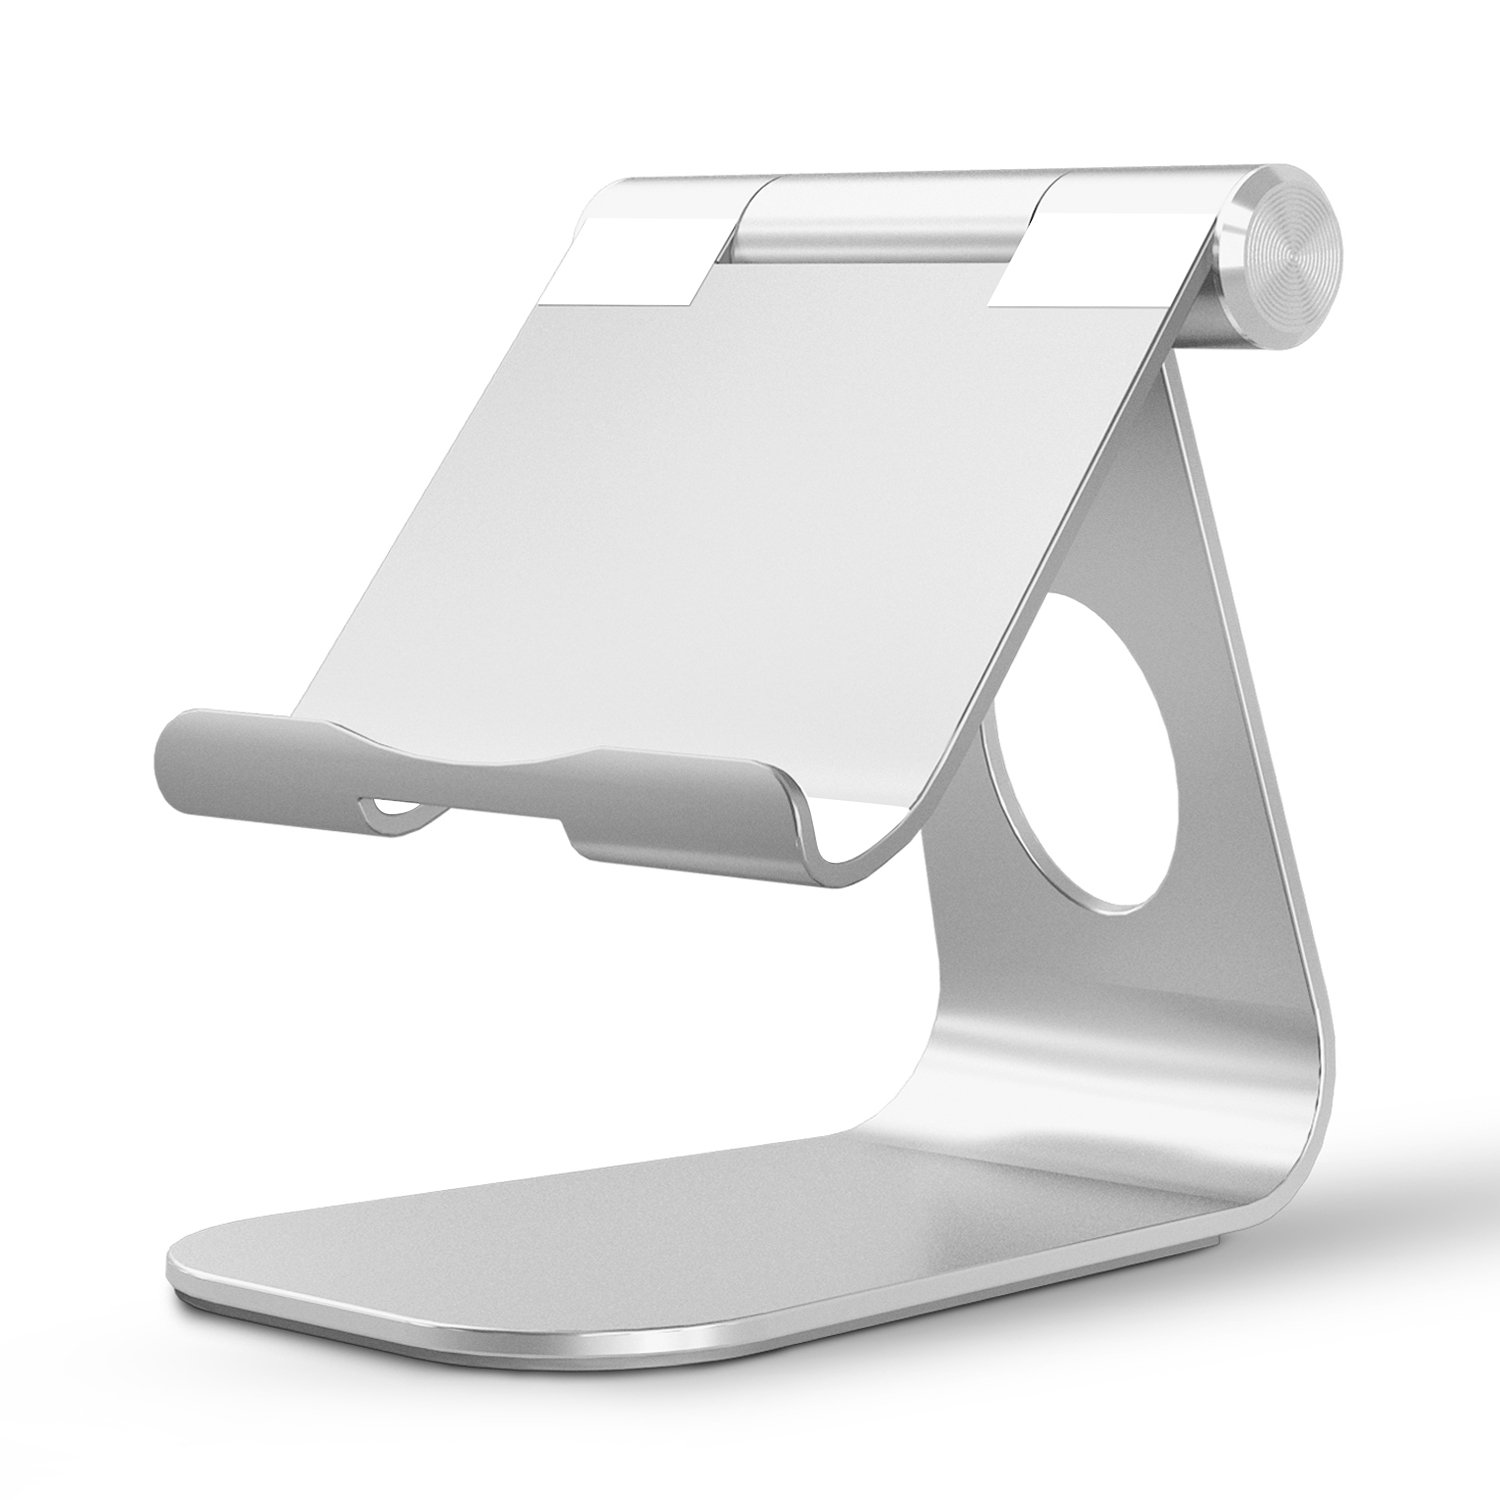 OMOTON Tablet Stand, Adjustable Multi-Angle Aluminum iPad Stand, with Stable Sticky Base and Convenient Charging Port, Fits All Smart Phones, E-readers and Tablets (Up to 12.9 inch), Silver